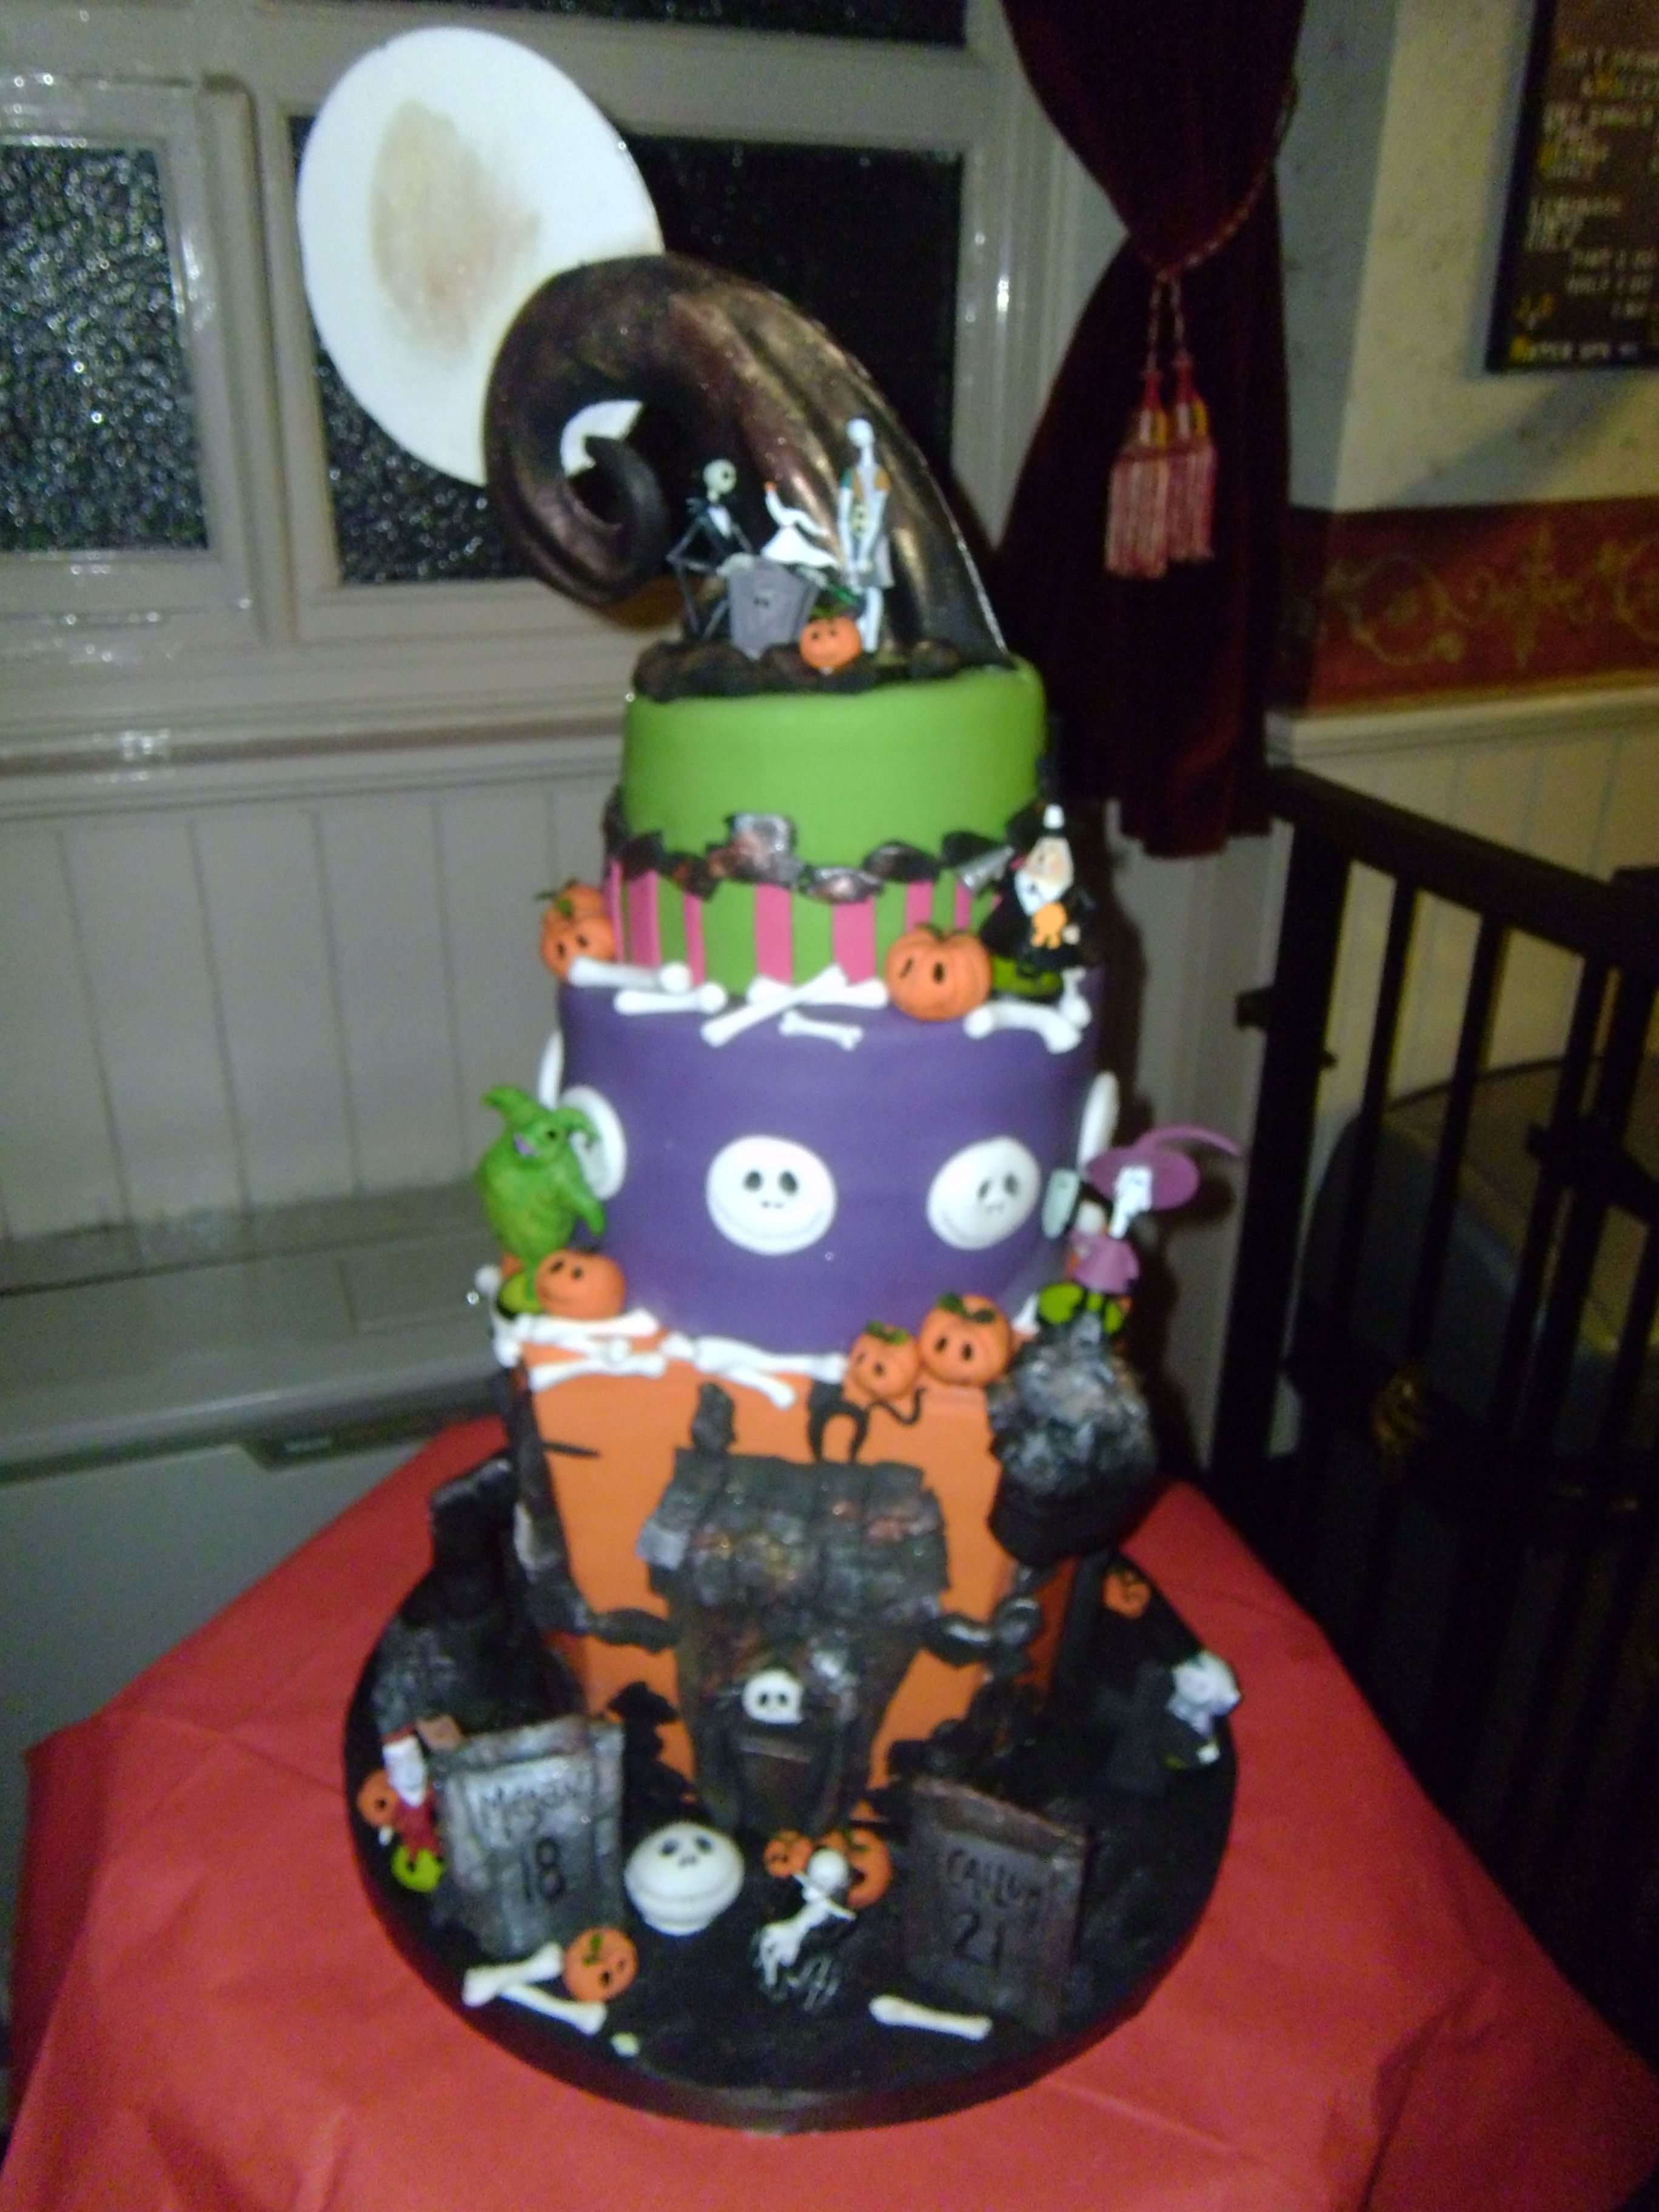 A Nightmare Before Christmas Birthday Cake Made For My Son